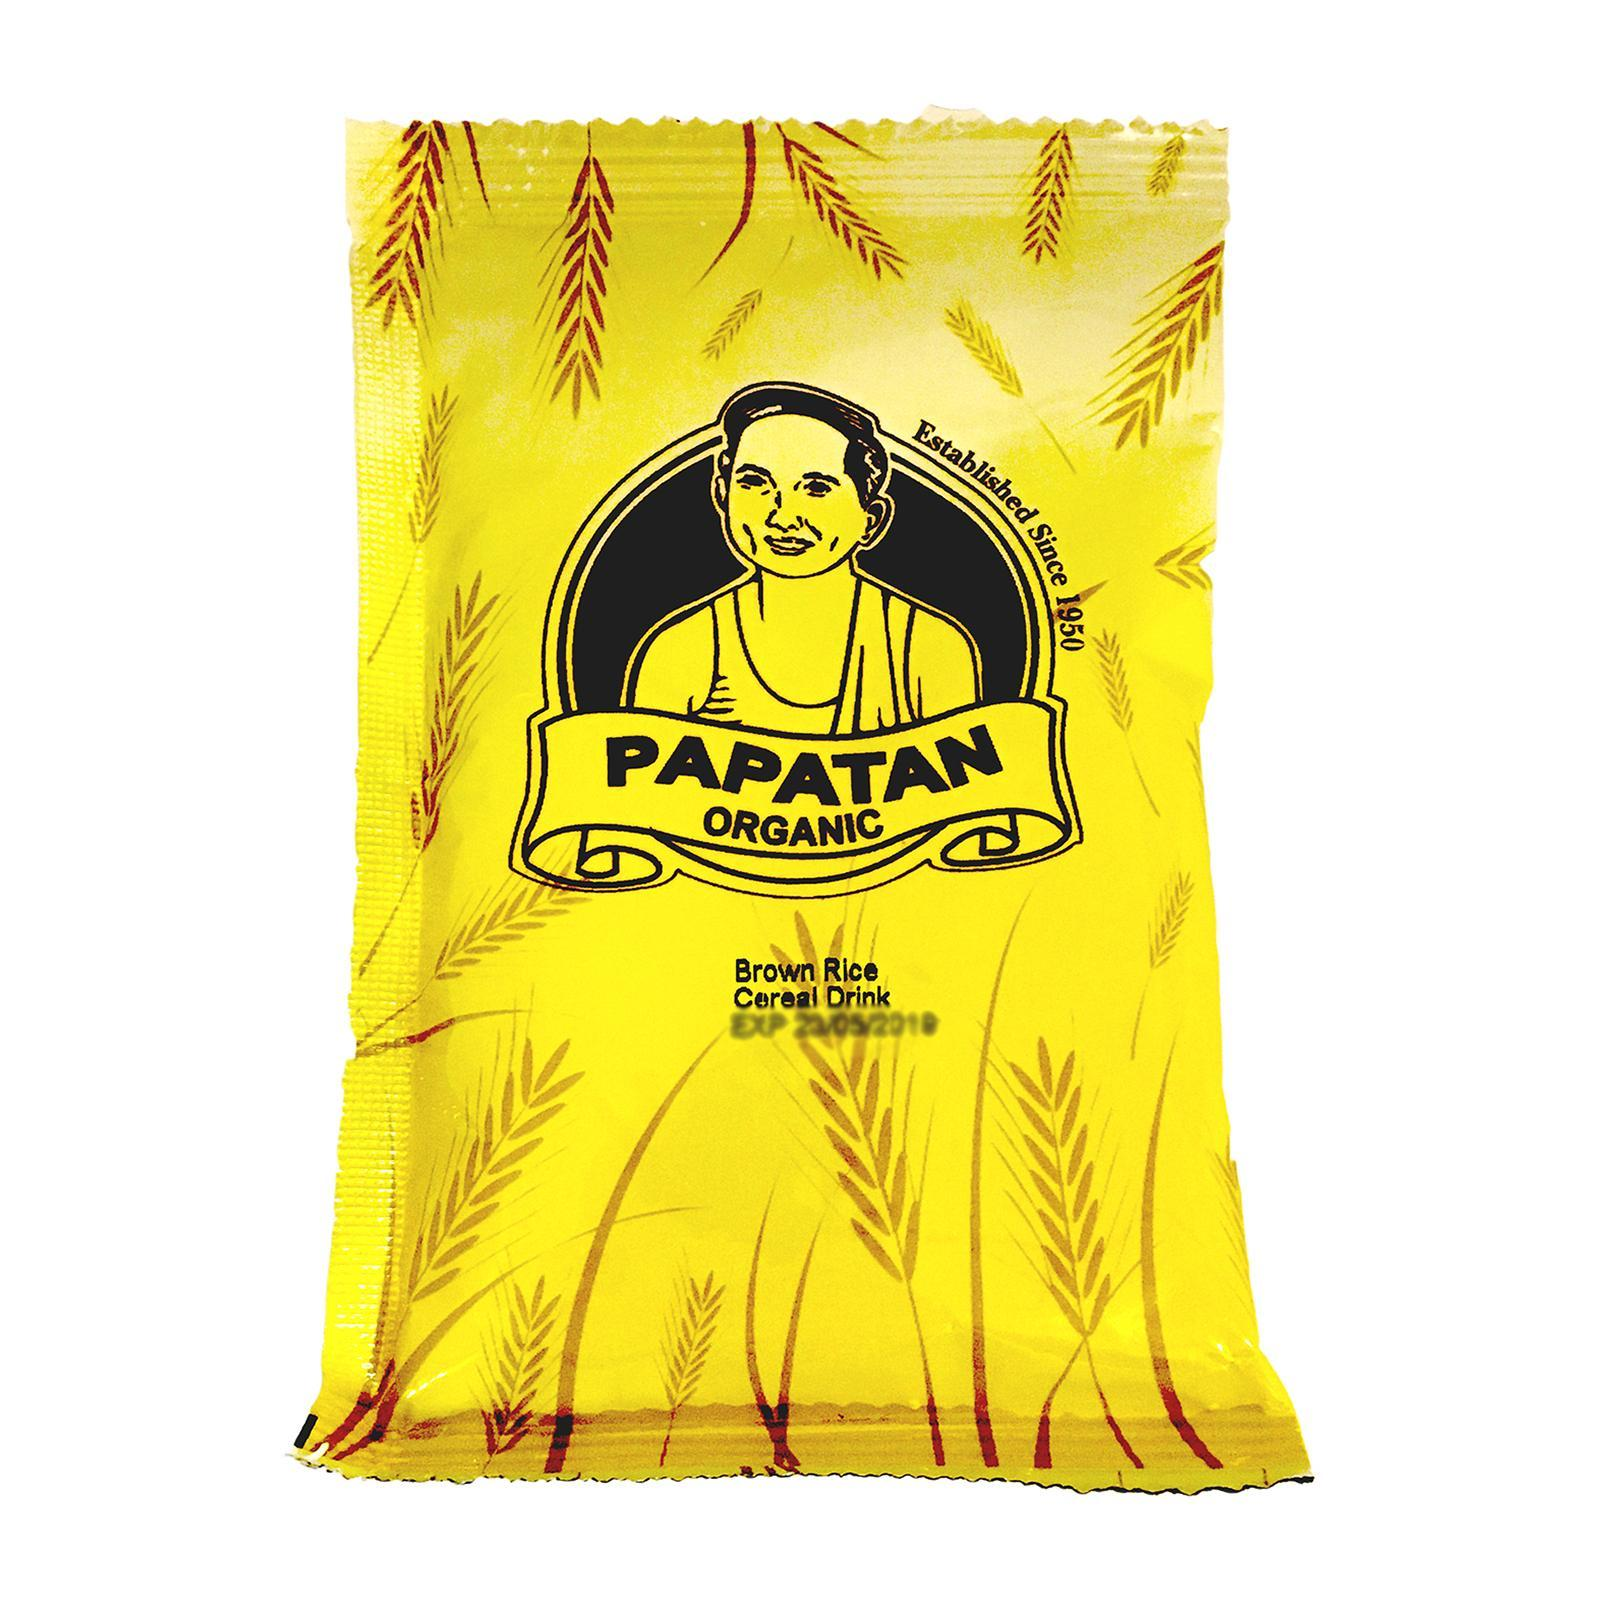 Pa Pa Tan Natural Brown Rice Cereal Drink - Sachet [sample] By Redmart